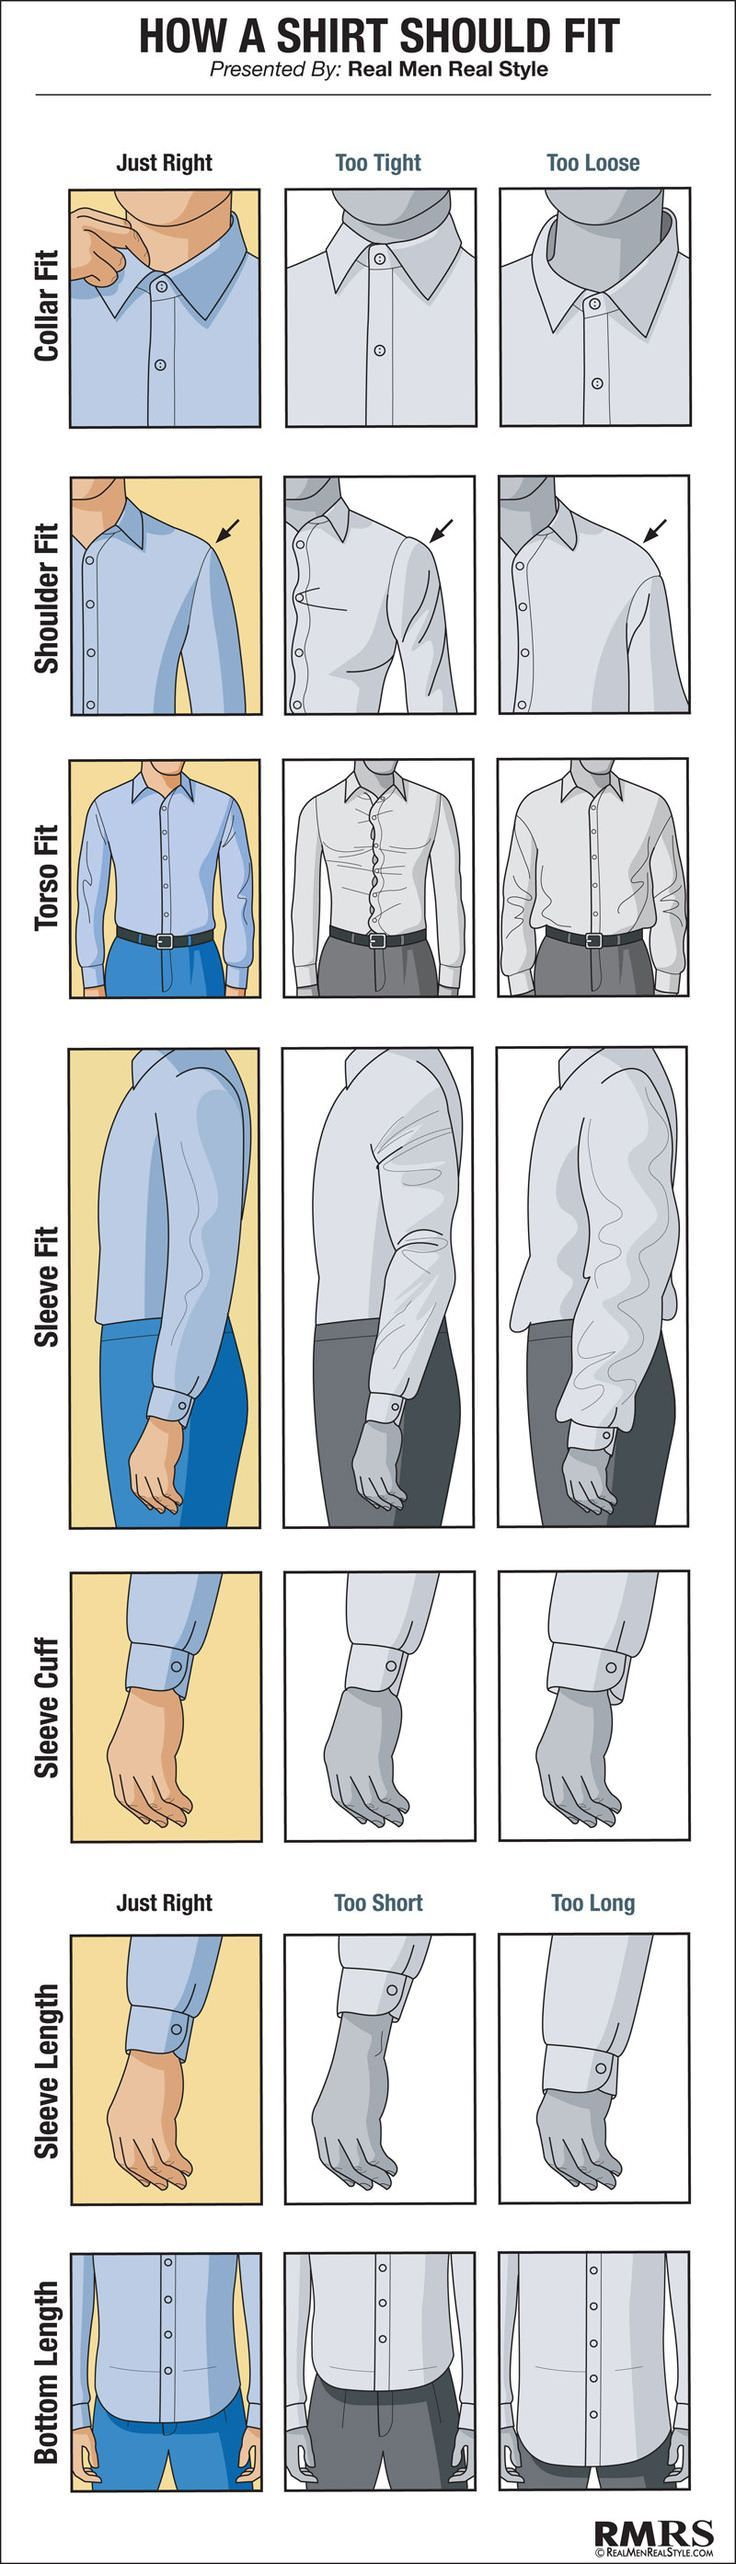 a brief guide for perfect fitting shirt, how a men's shirt should fit                                                                                                                                                                                 More